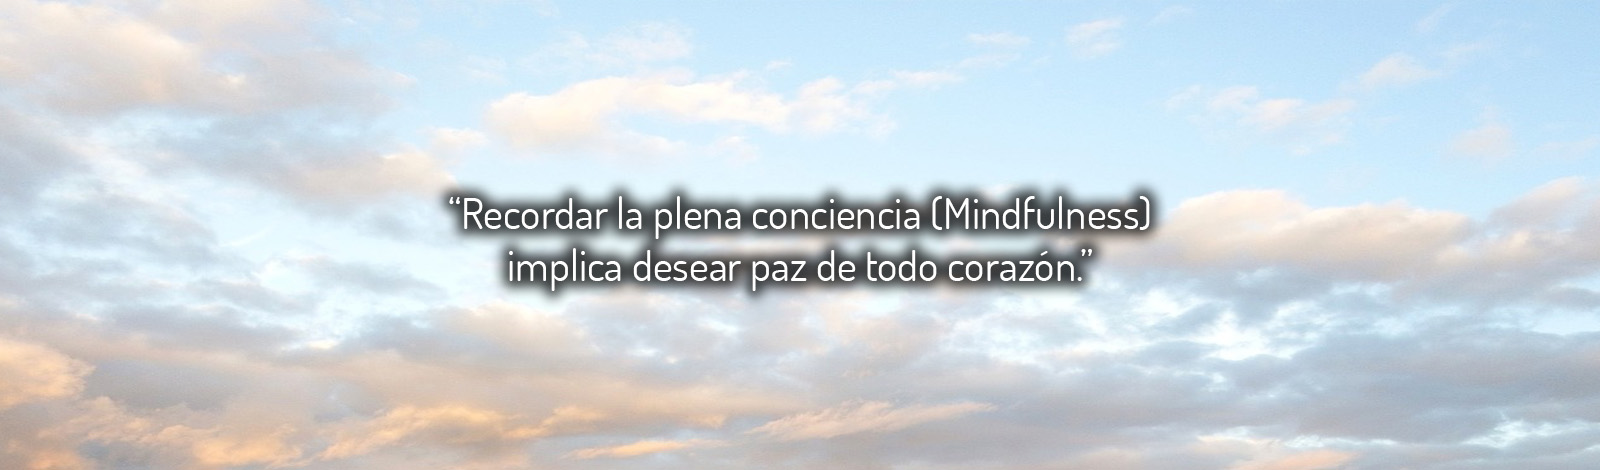 05slider-especialistas-mindfulness